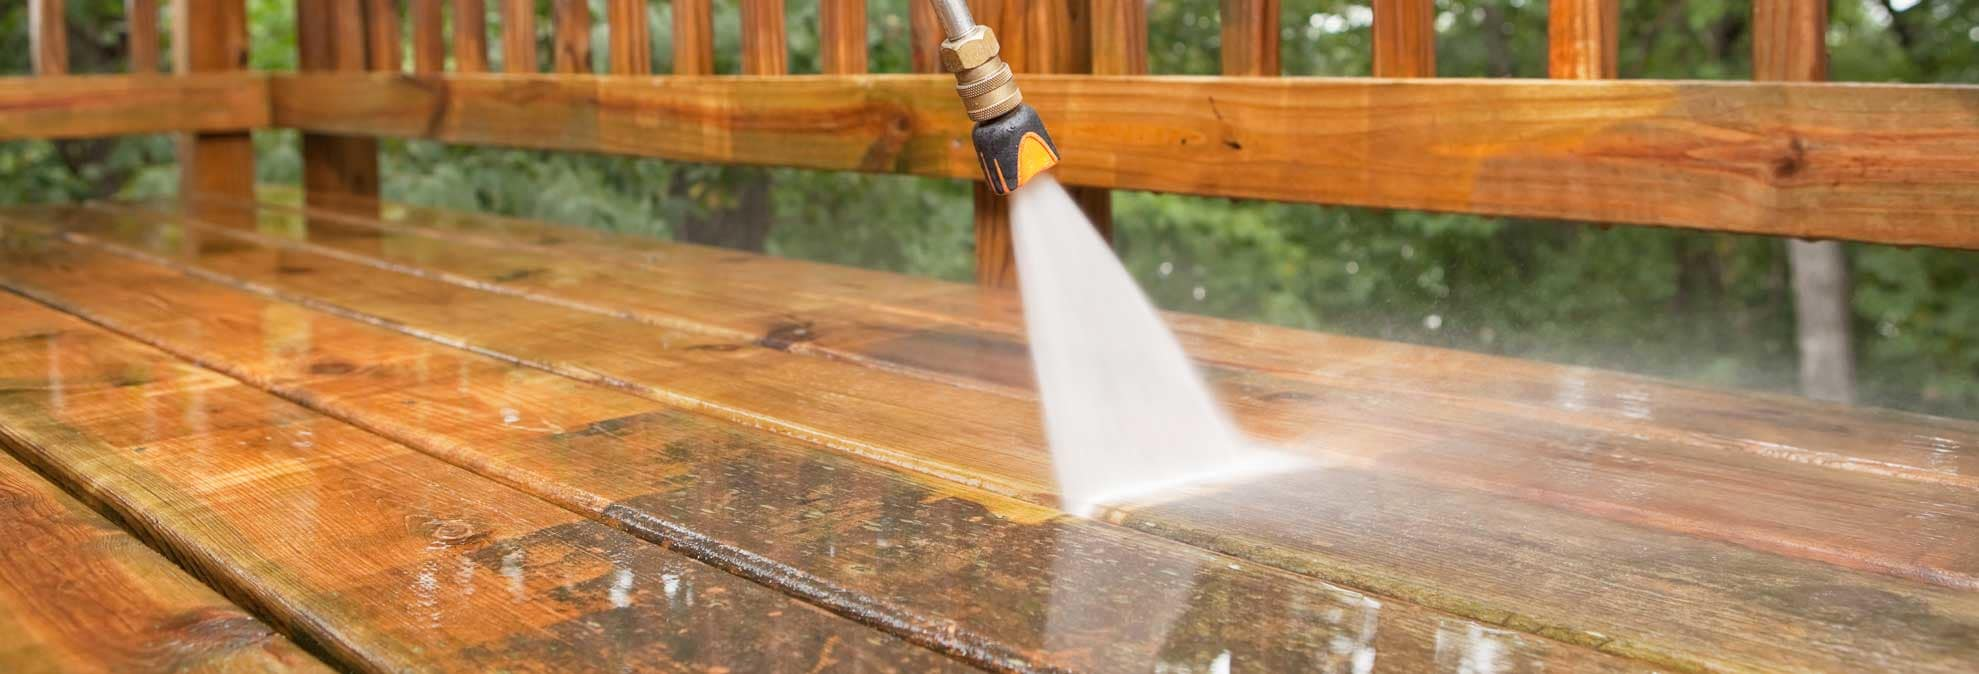 Gutter Cleaning Leland Nc